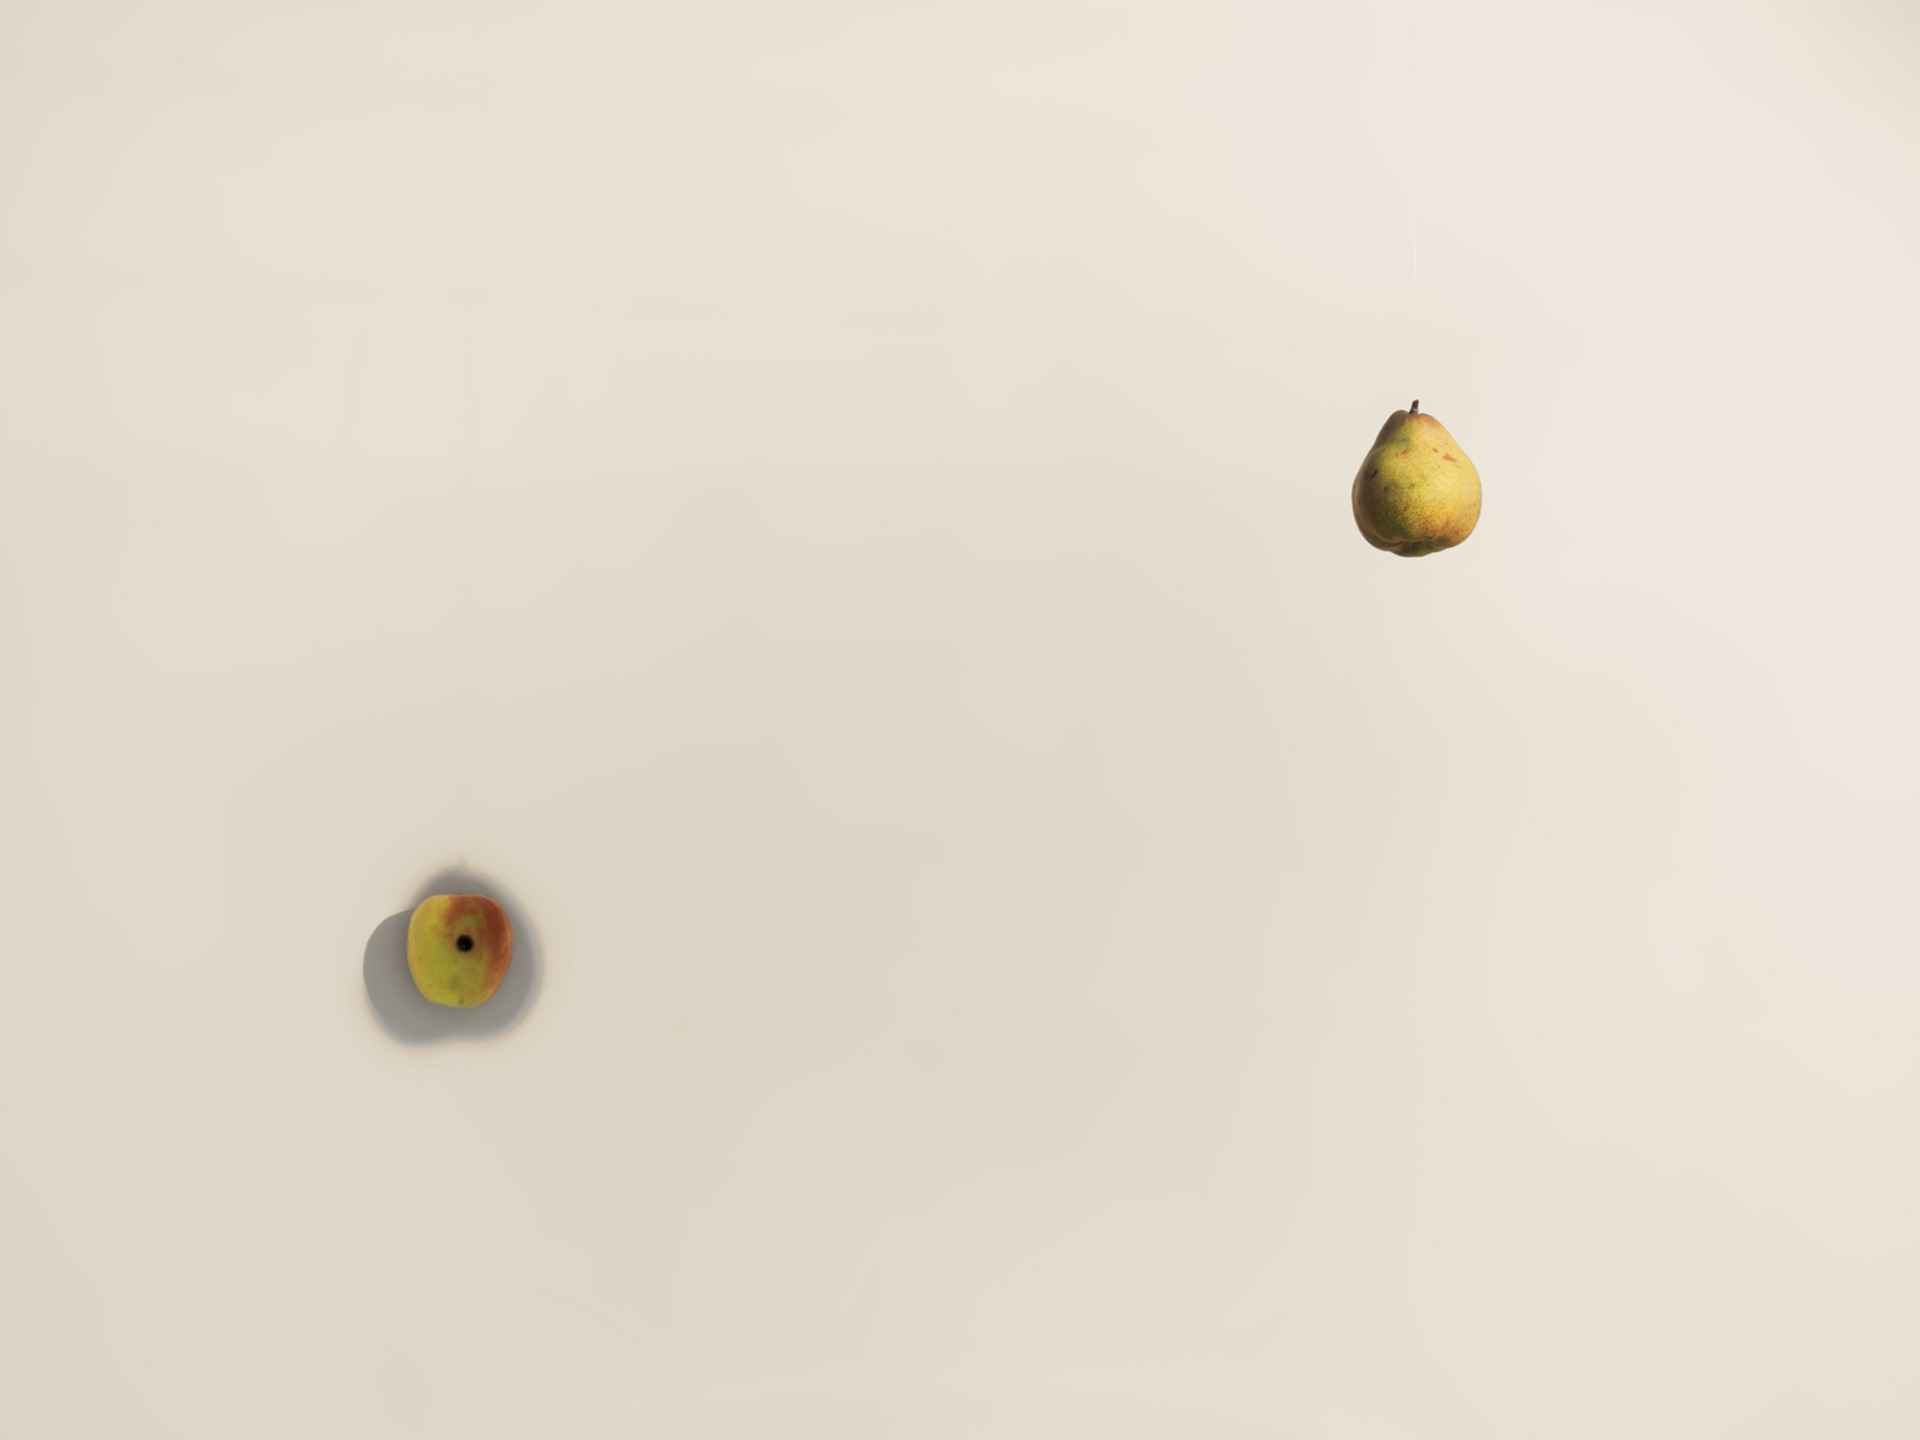 Untitled (Pear / Apple)